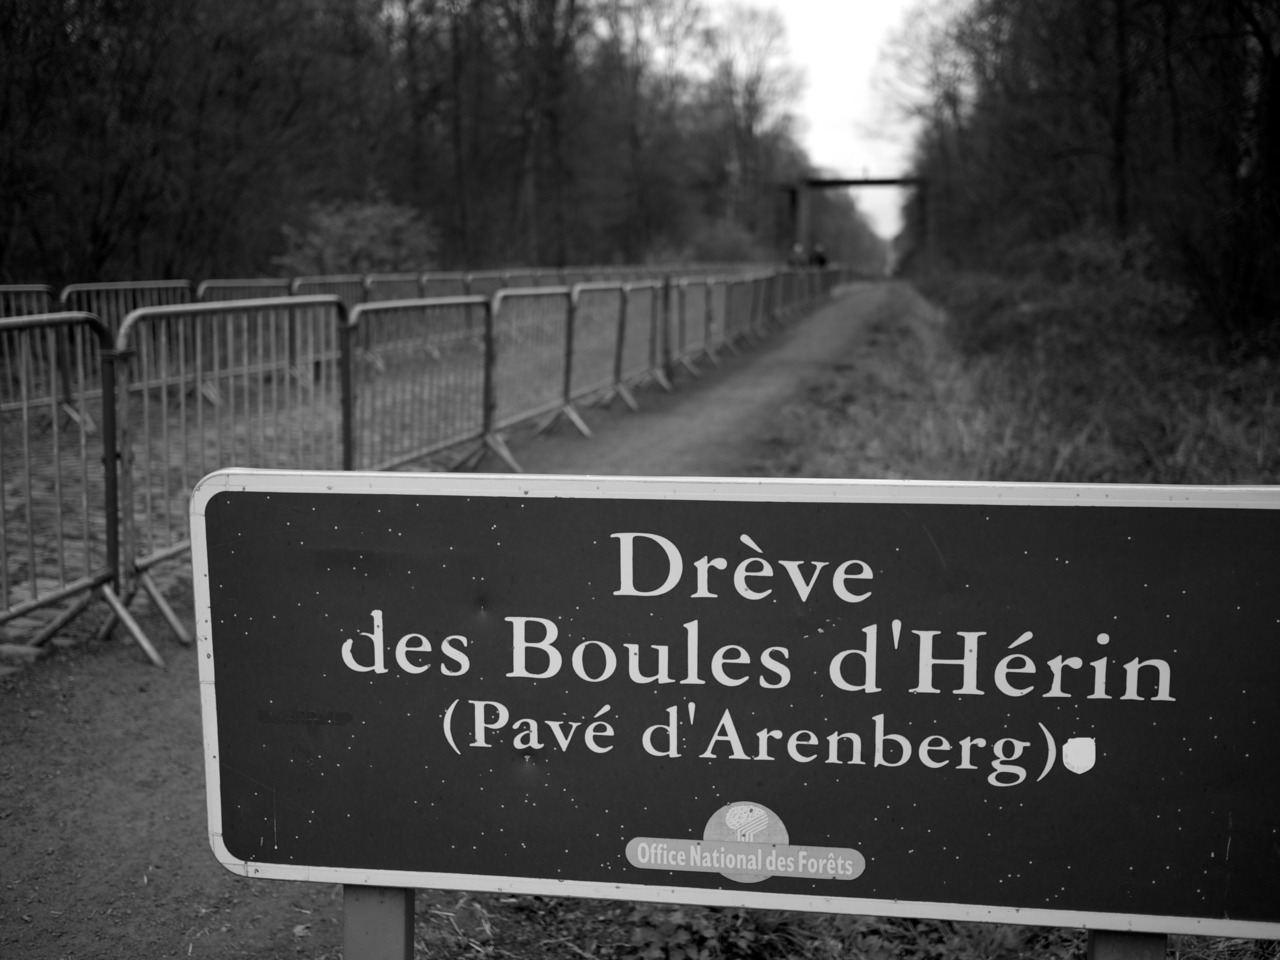 TROUÉE D'ARENBERG, FRANCE